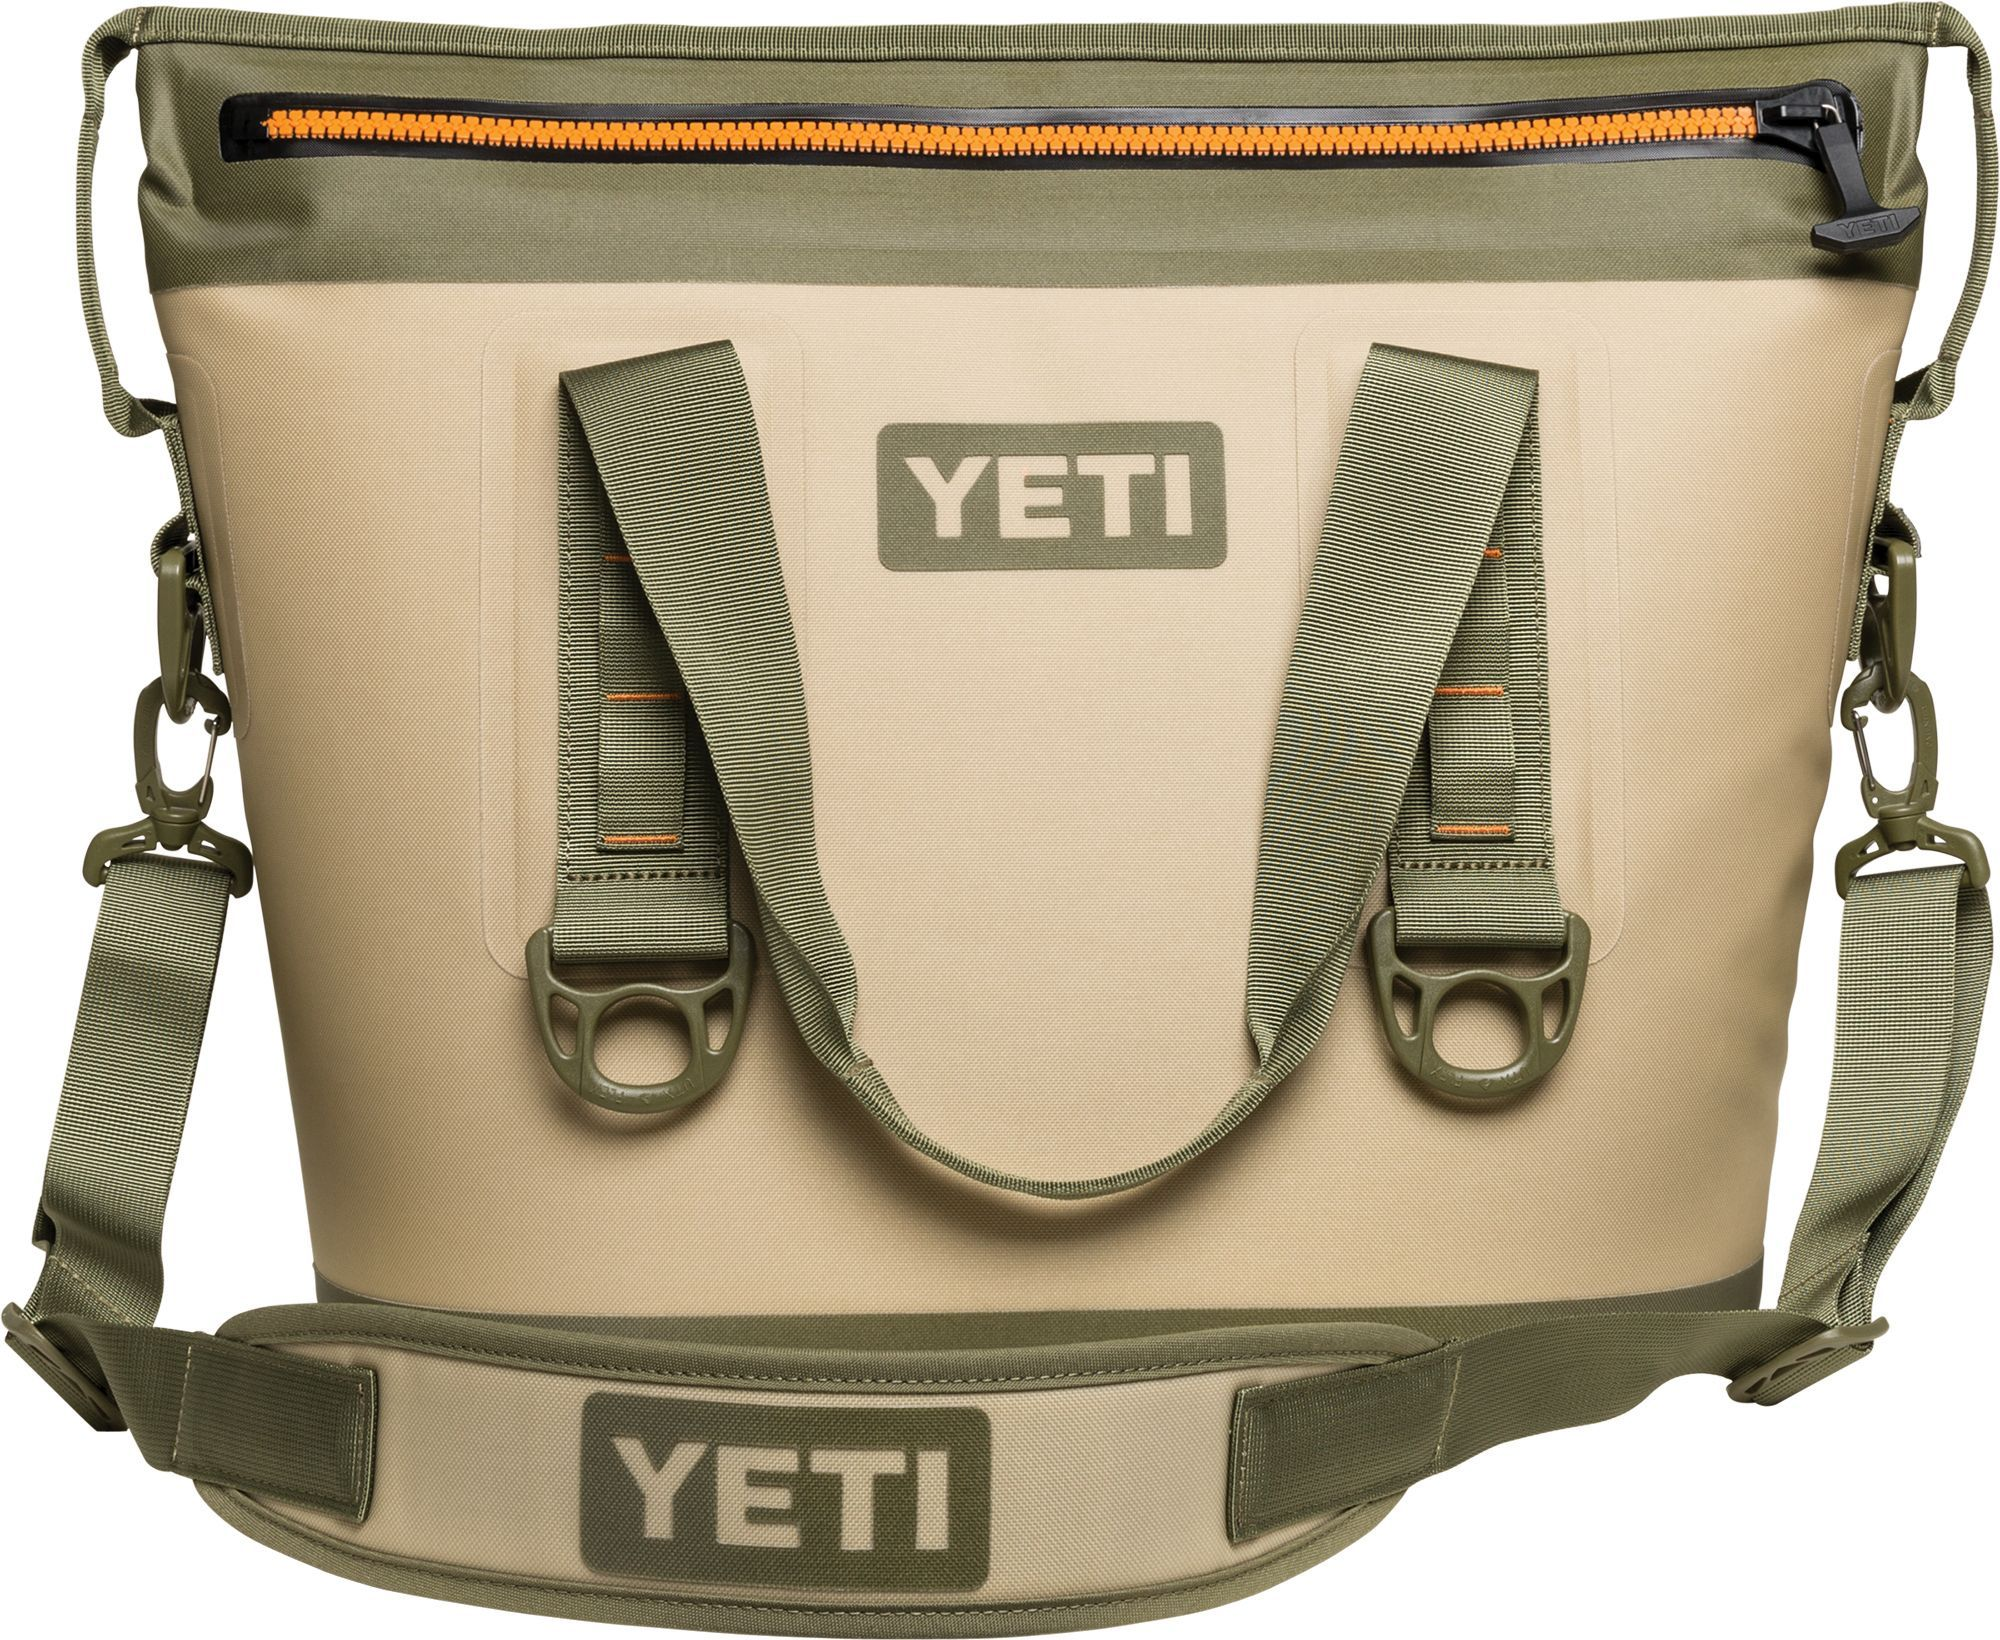 Yeti Hopper Two 20 Cooler In 2019 Products Yeti Cooler